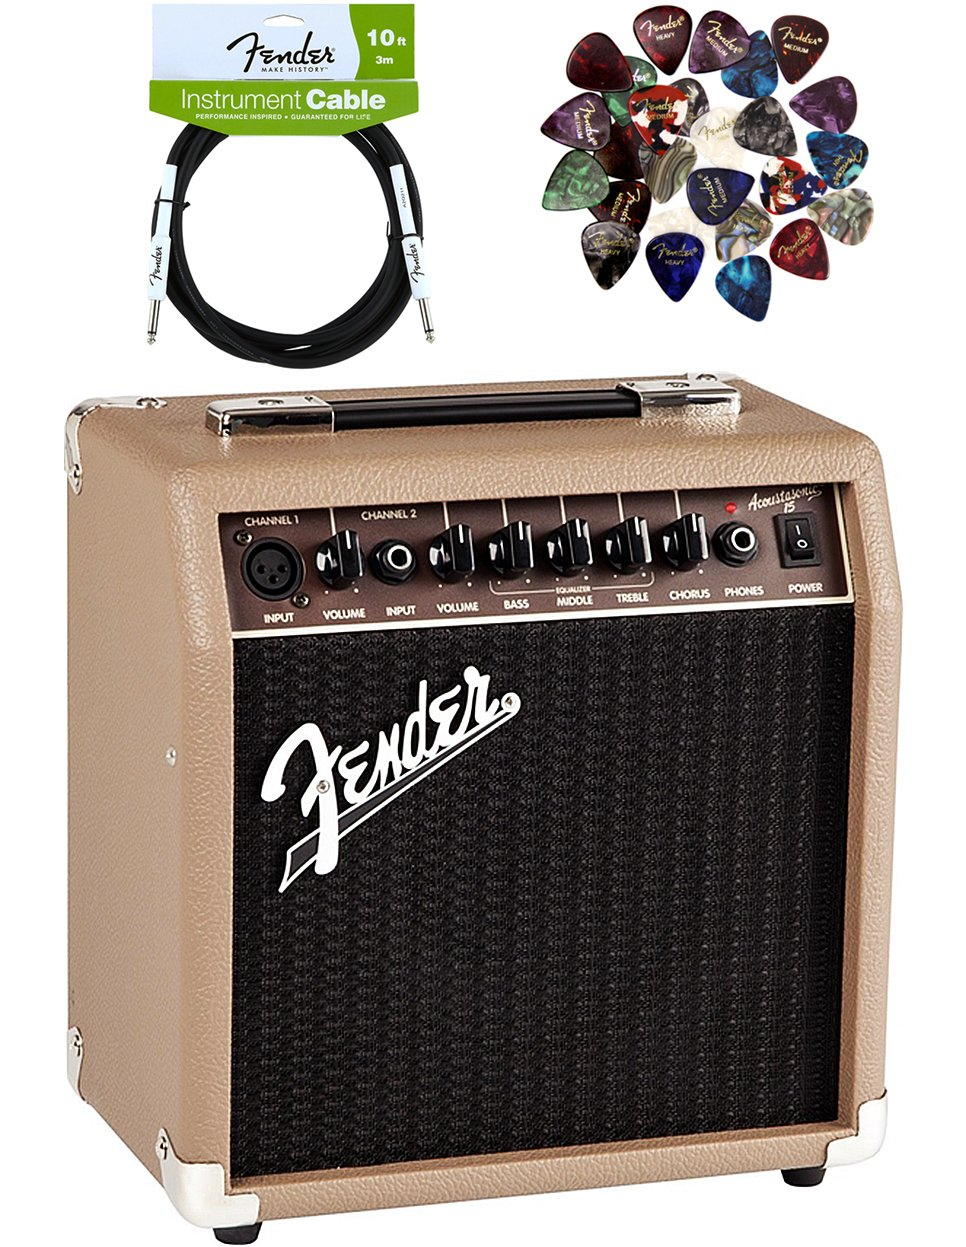 Fender Acoustasonic 15 Acoustic Guitar Amplifier - Brown and Wheat Bundle with Instrument Cable, 24 Picks, and Austin Bazaar Polishing Cloth by Fender